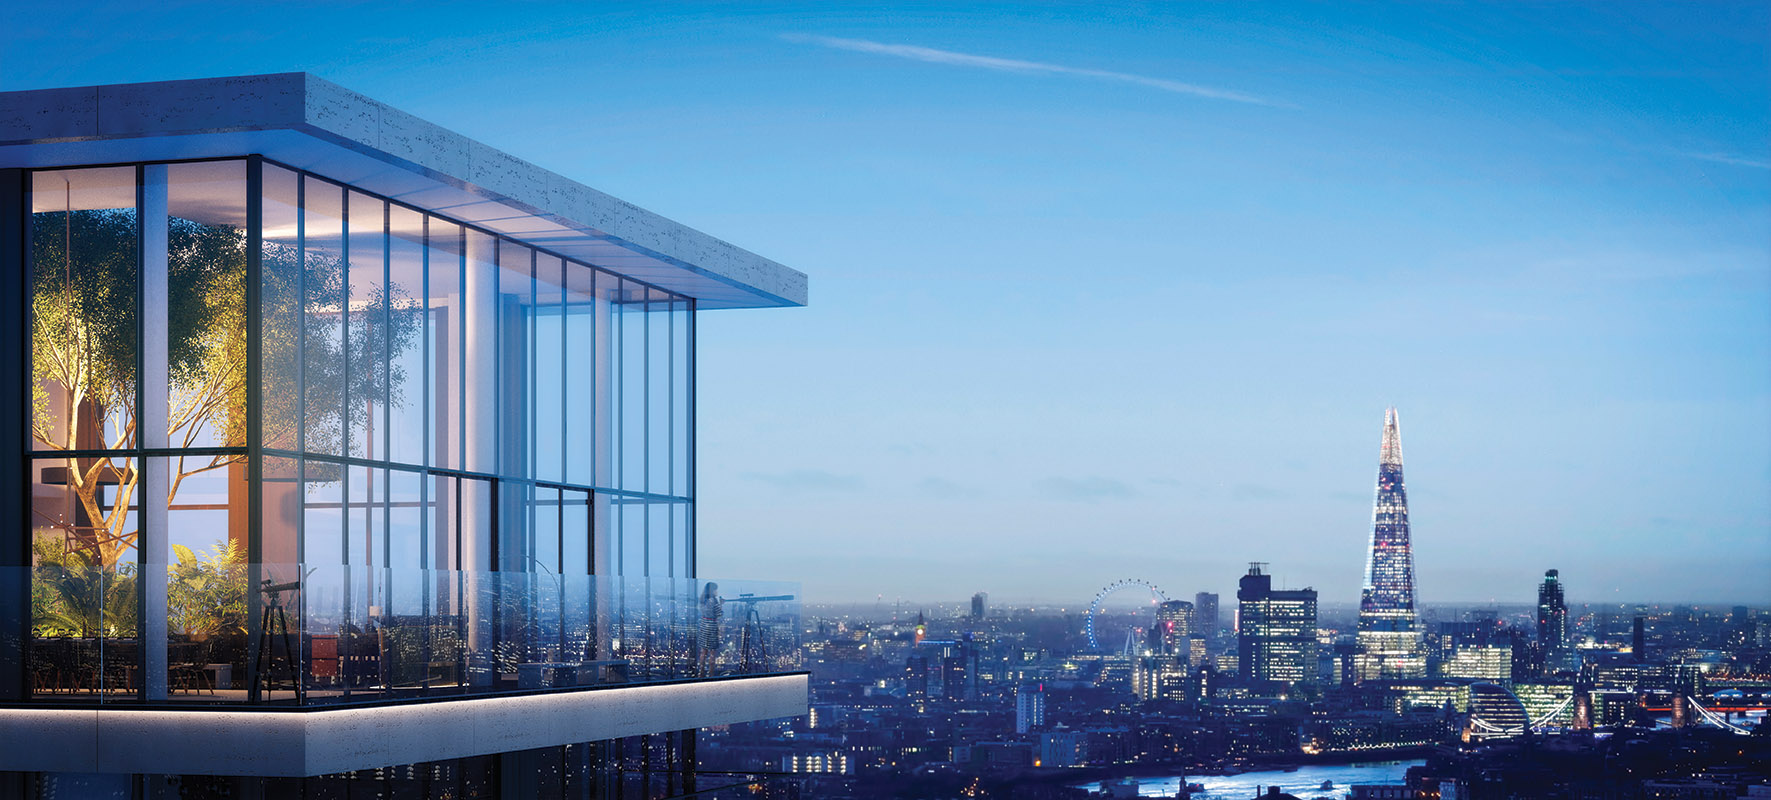 The observation deck at Wardian London